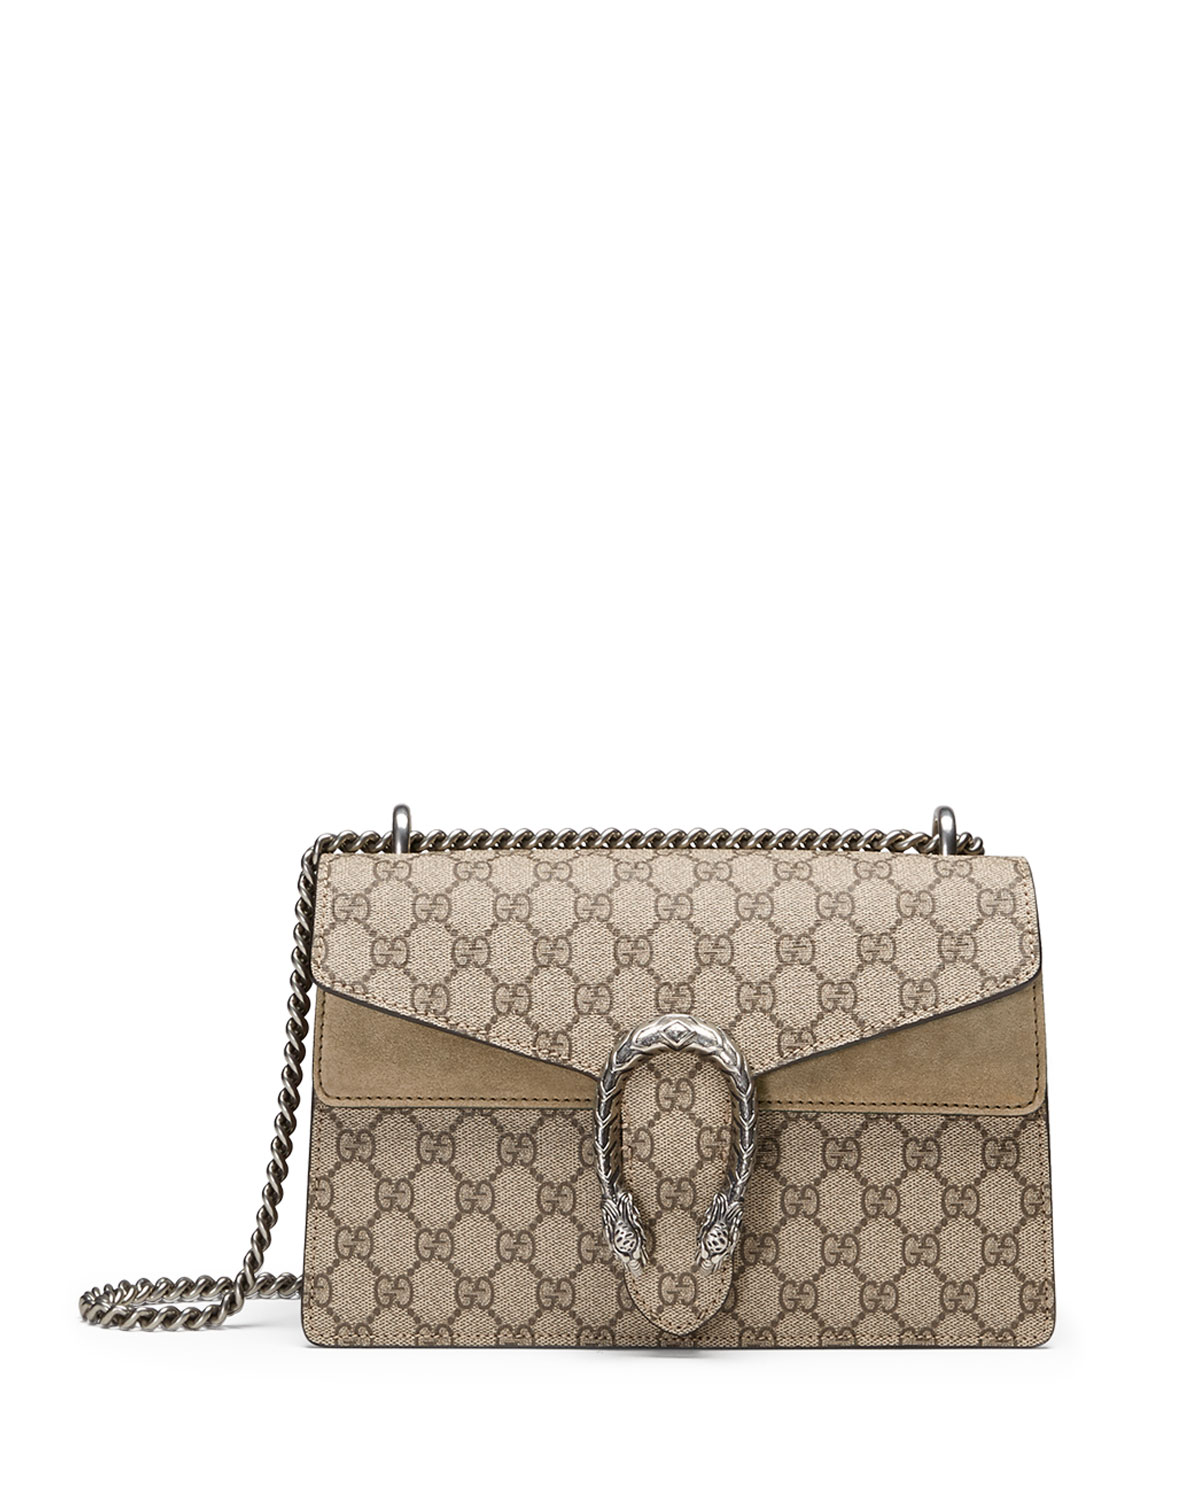 a106021e14b Quick Look. Gucci · Dionysus GG Supreme Small Shoulder Bag